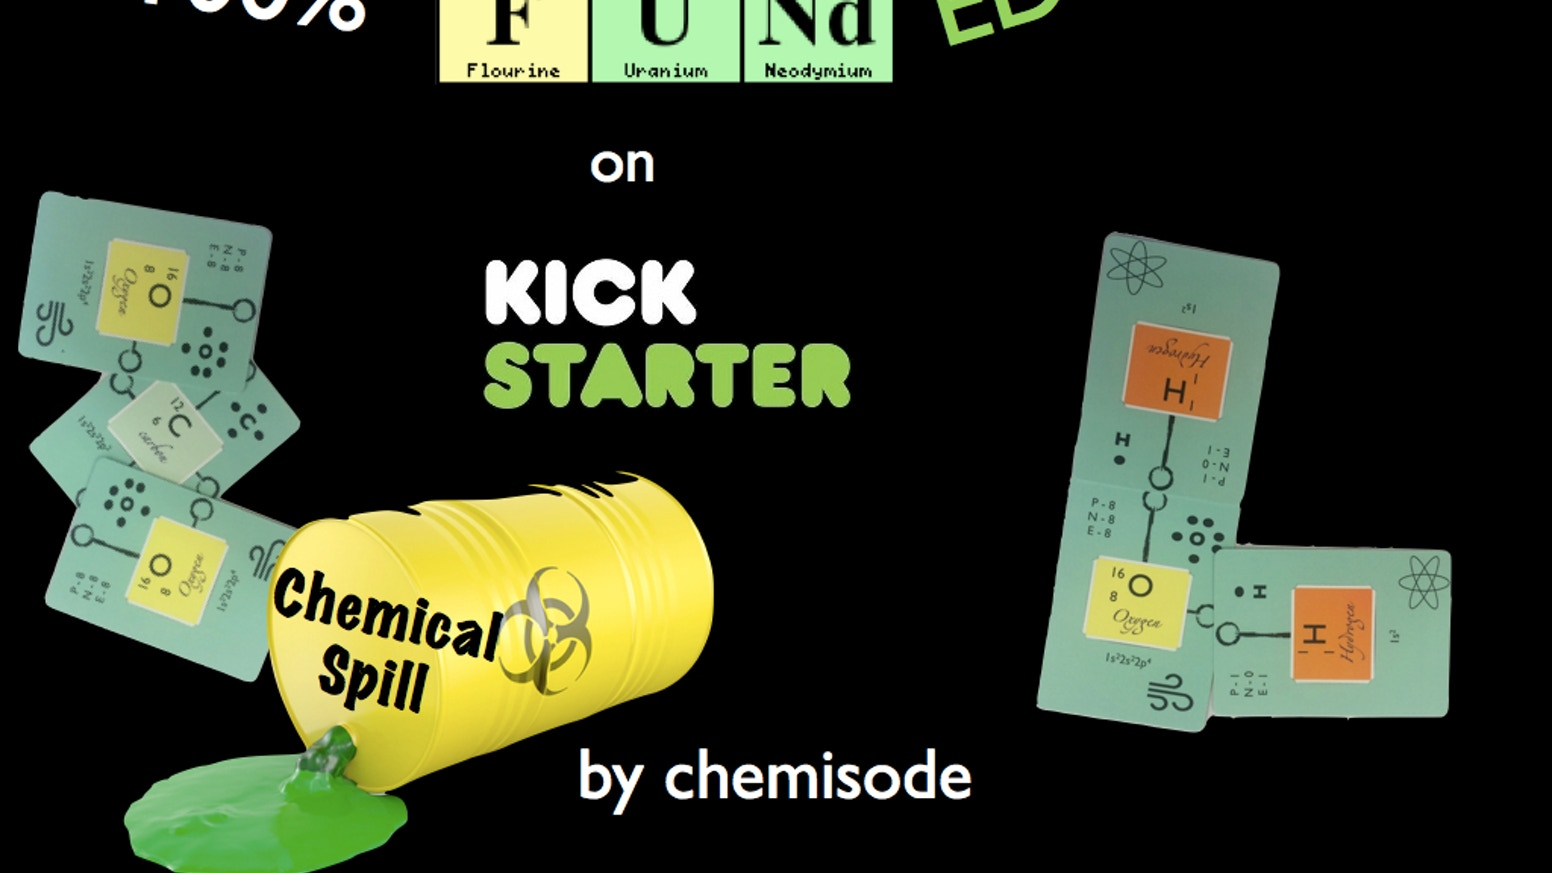 Chemical Spill by Chemisode: the chemistry card game by